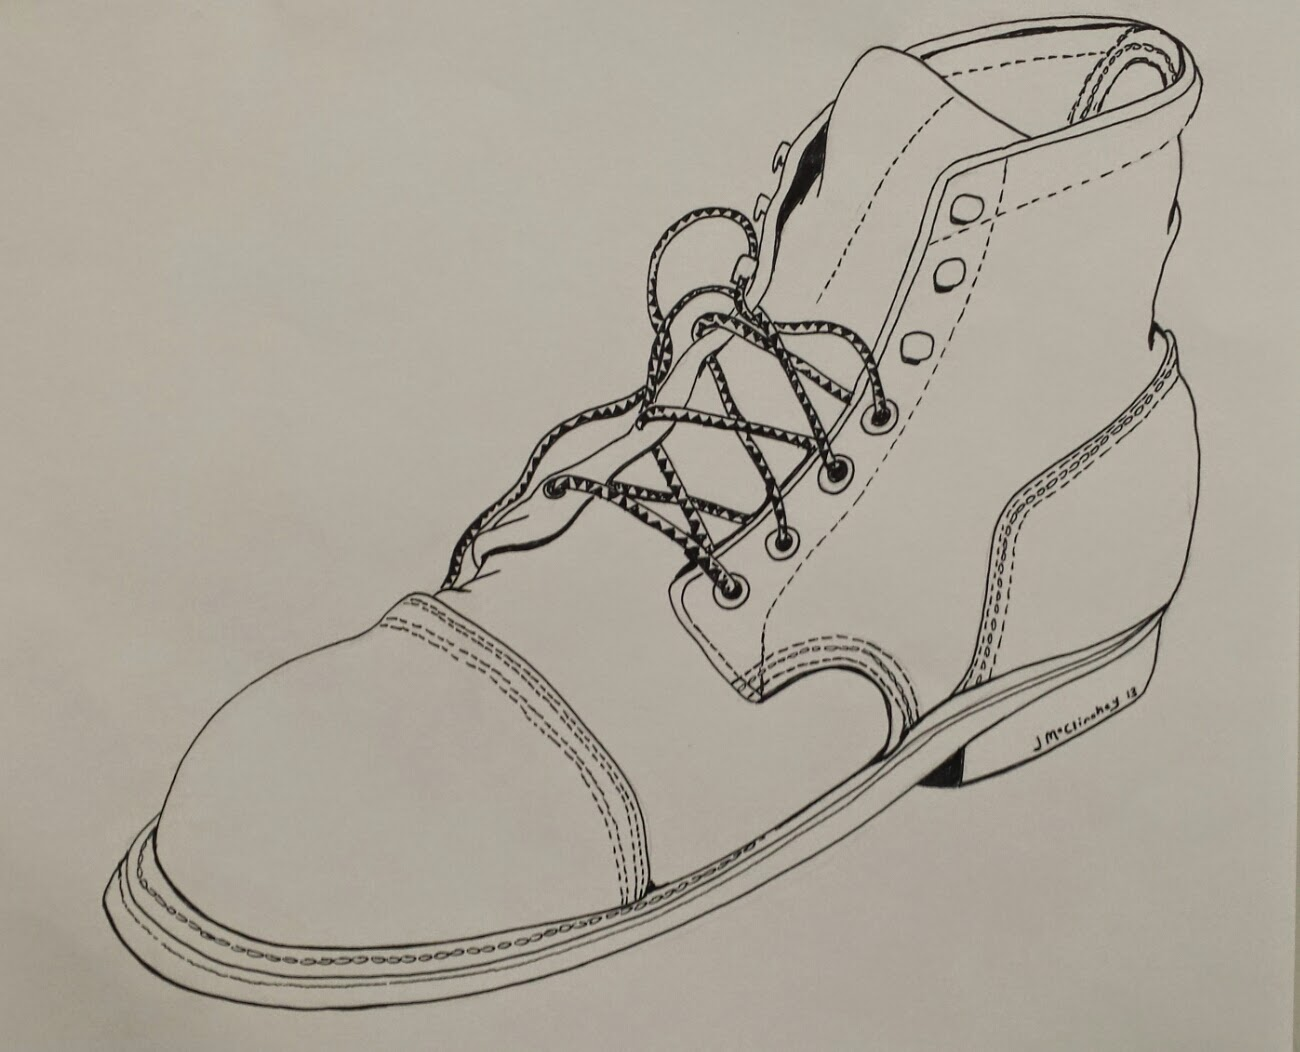 Contour Line Drawing In Art : Project art a day lesson i can t resist it contour line drawing